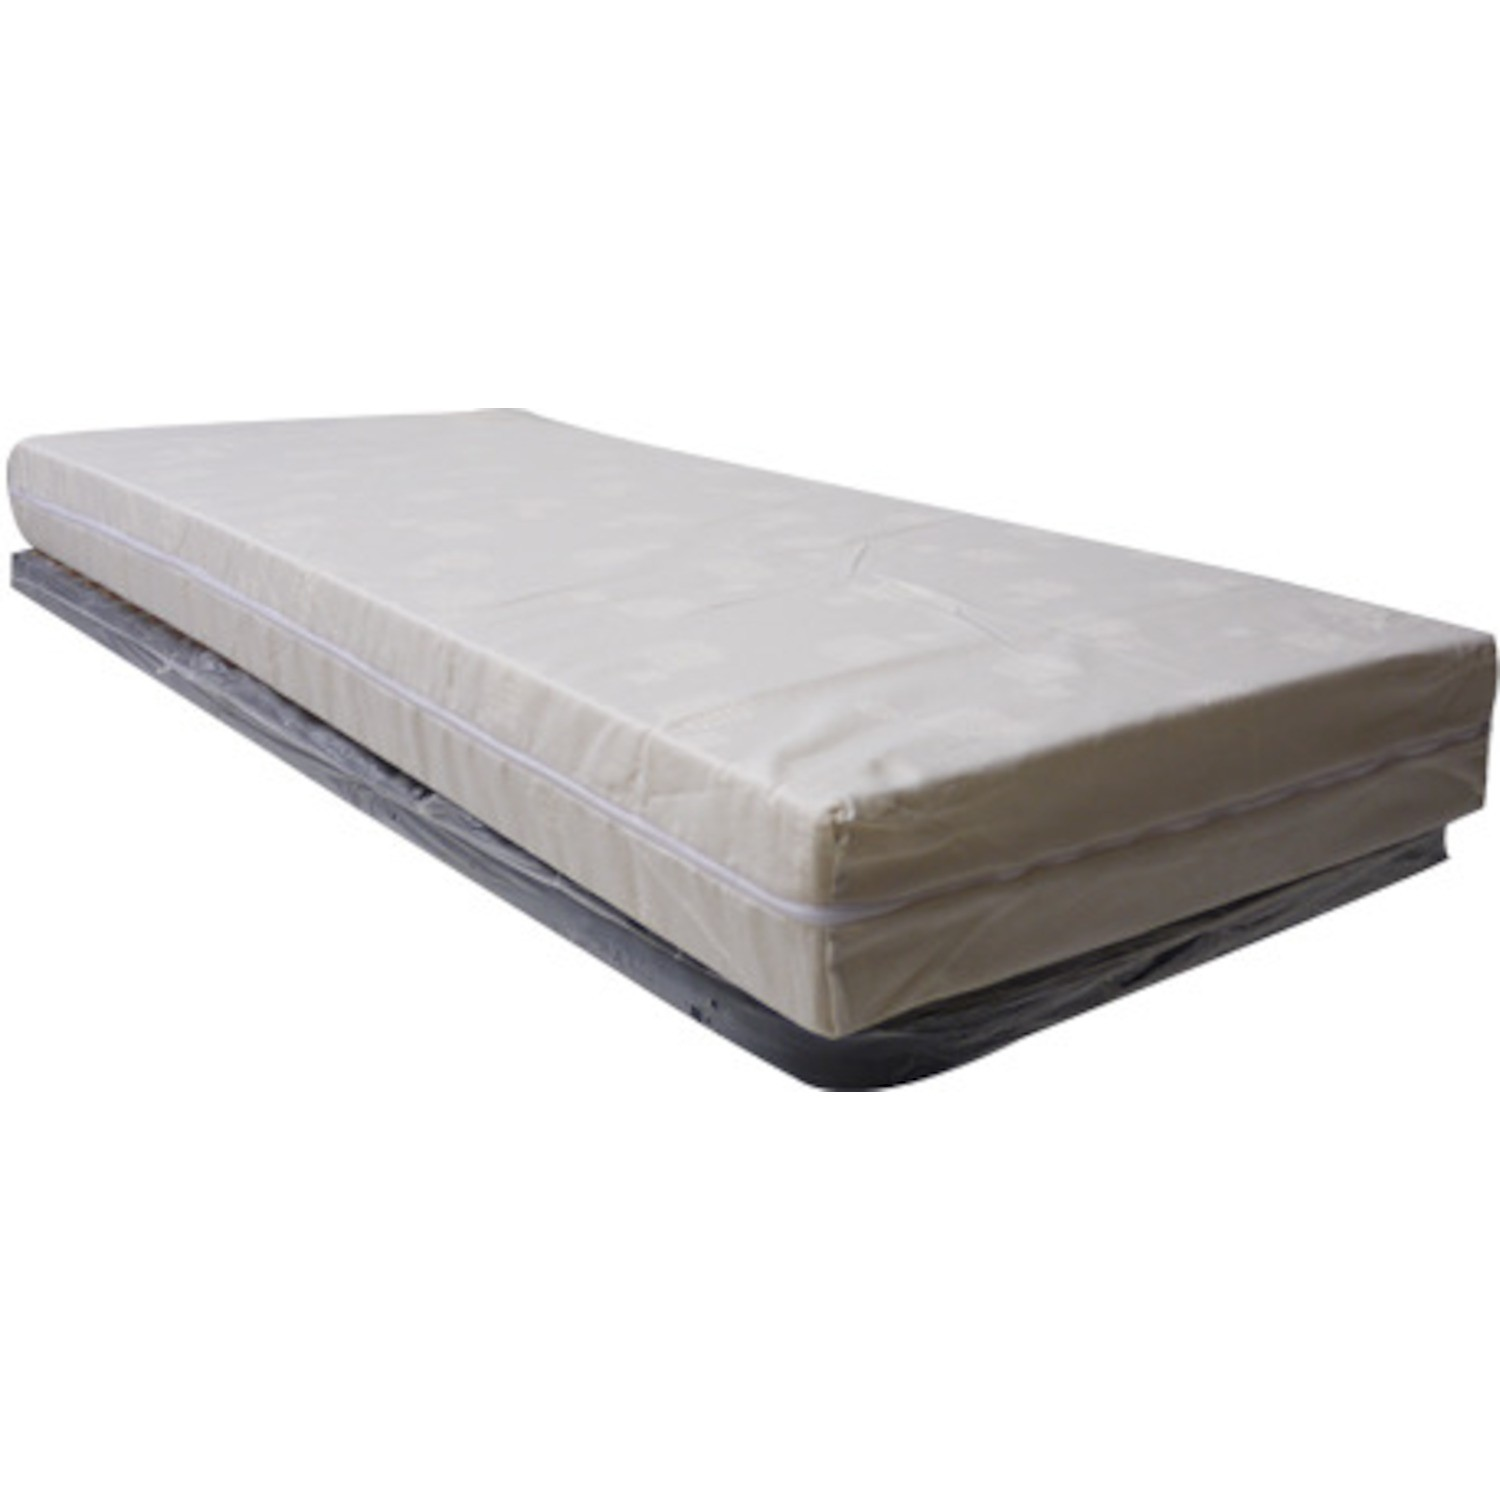 matelas mousse 15 cm haute r silience 38 kg megeve. Black Bedroom Furniture Sets. Home Design Ideas